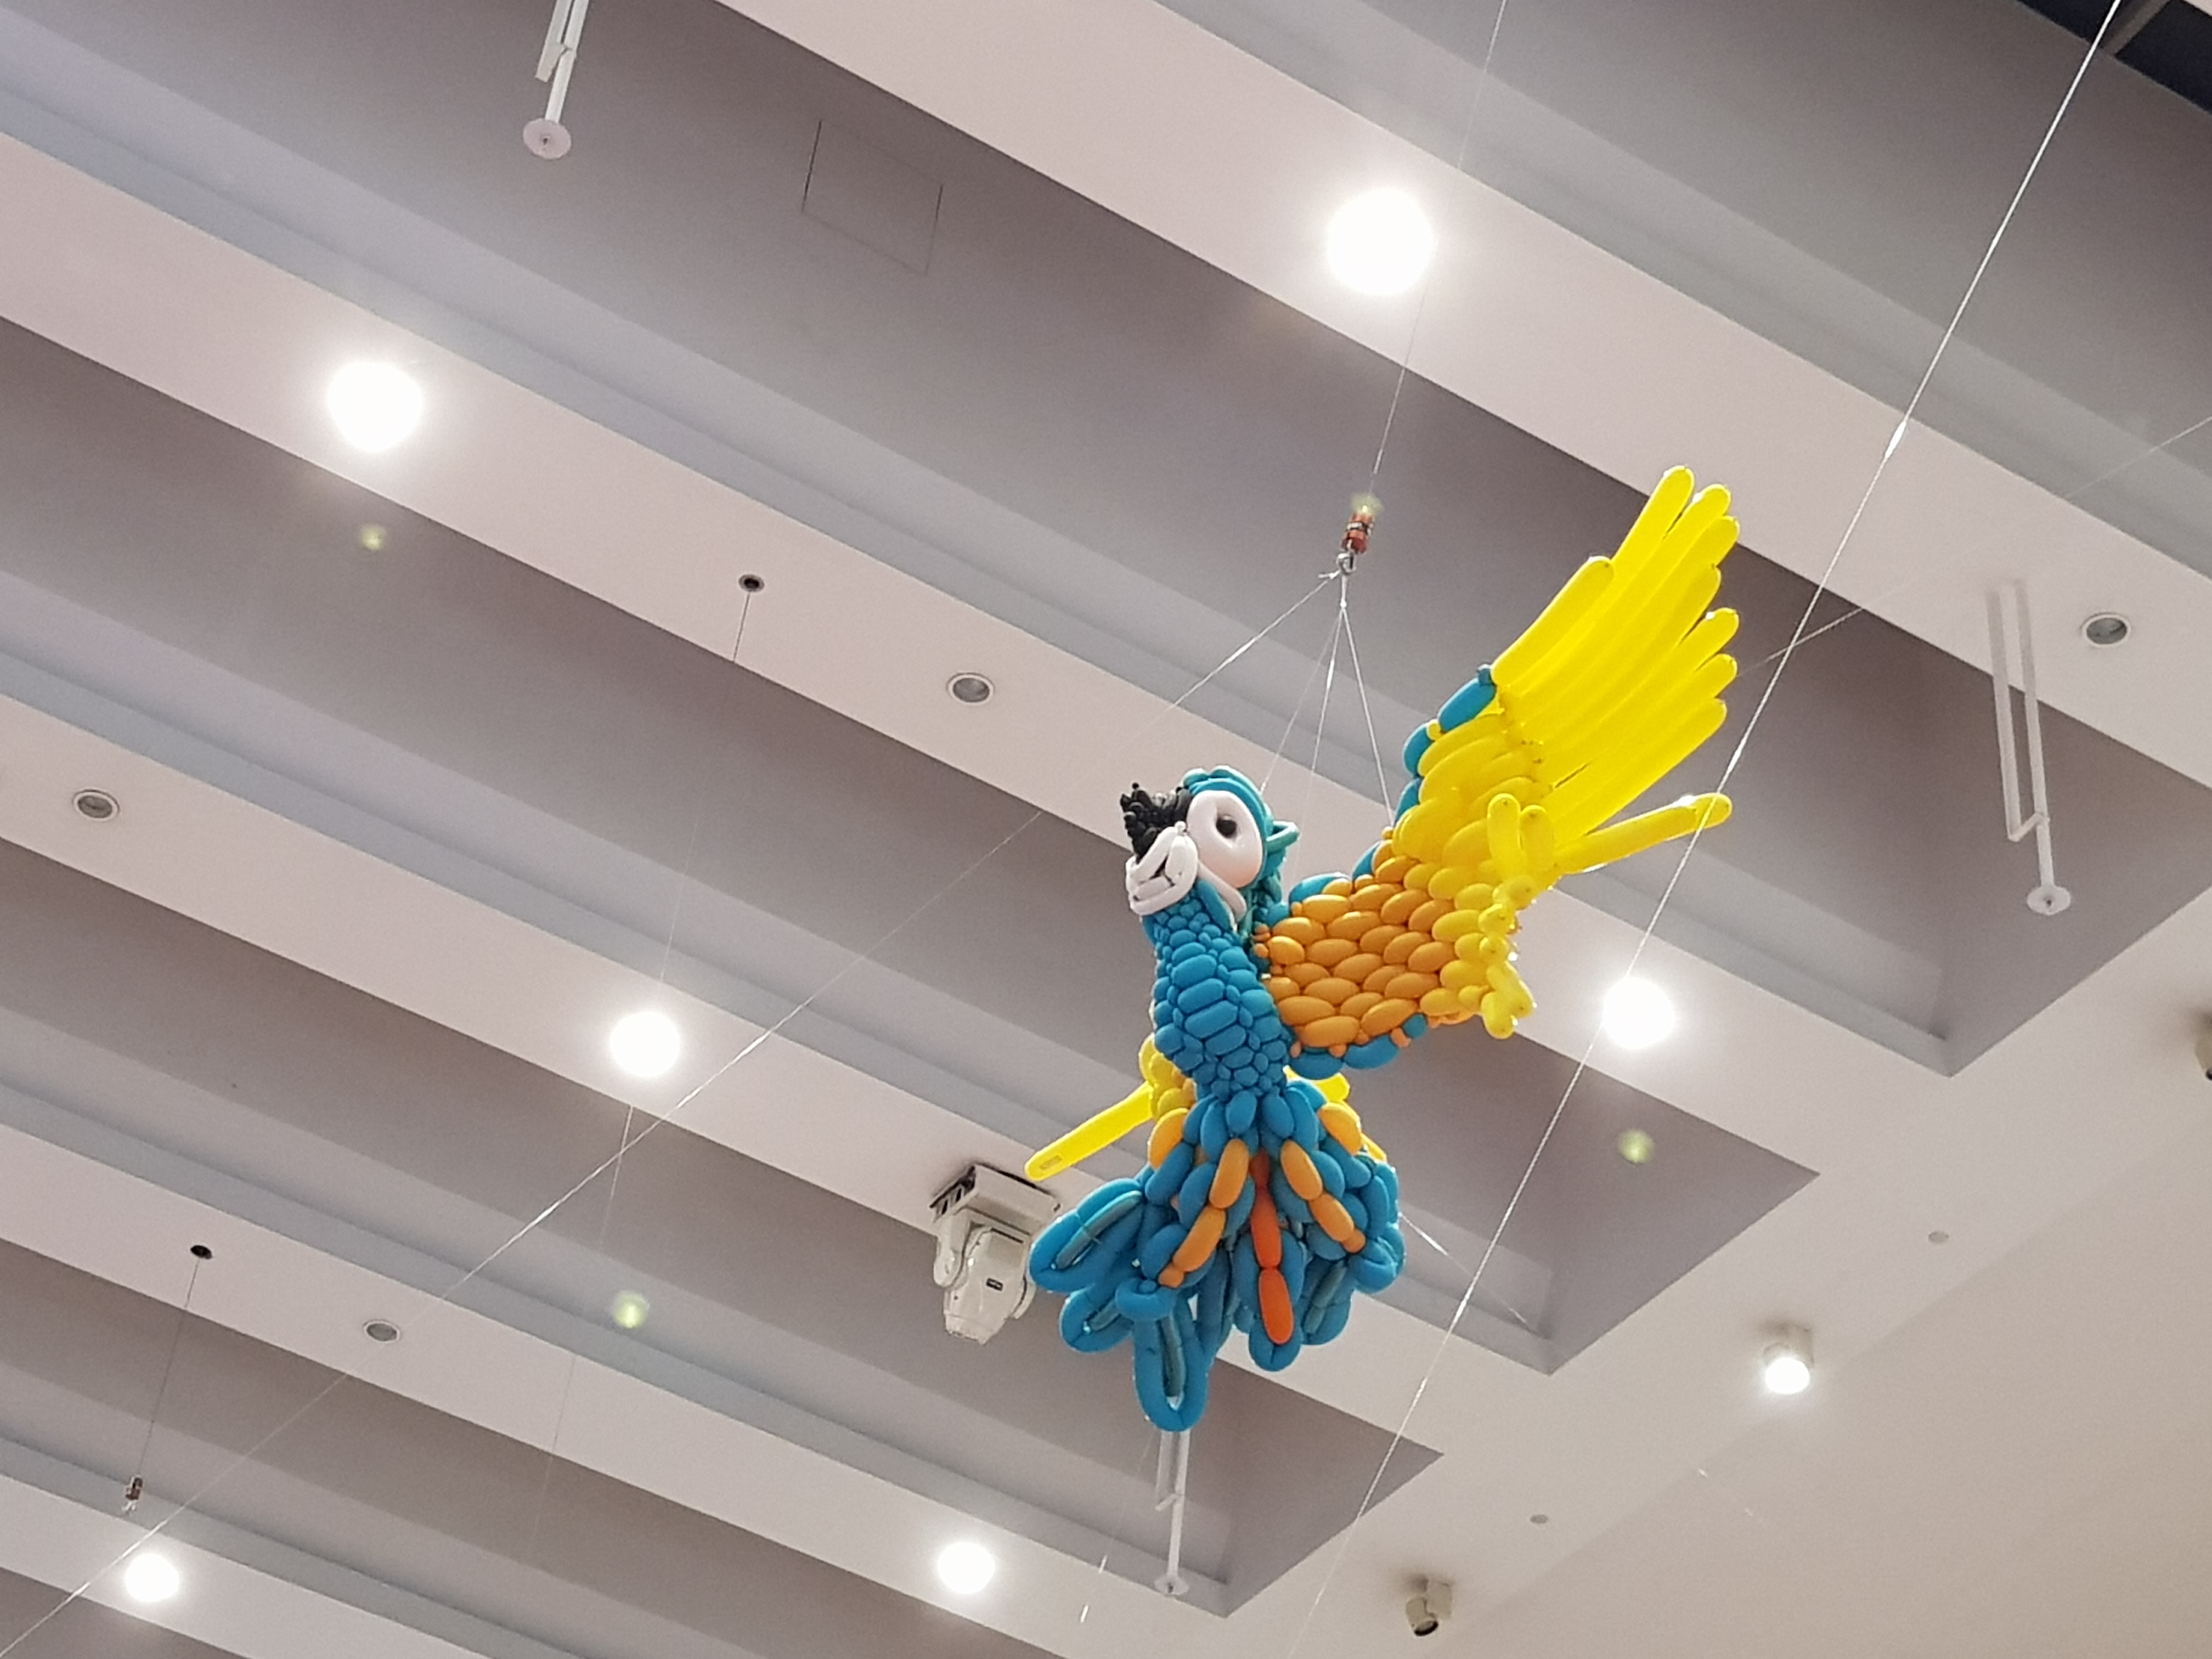 , Amazing Balloon Exhibition @ Marina Square Balloon Decorations Singapore!, Singapore Balloon Decoration Services - Balloon Workshop and Balloon Sculpting